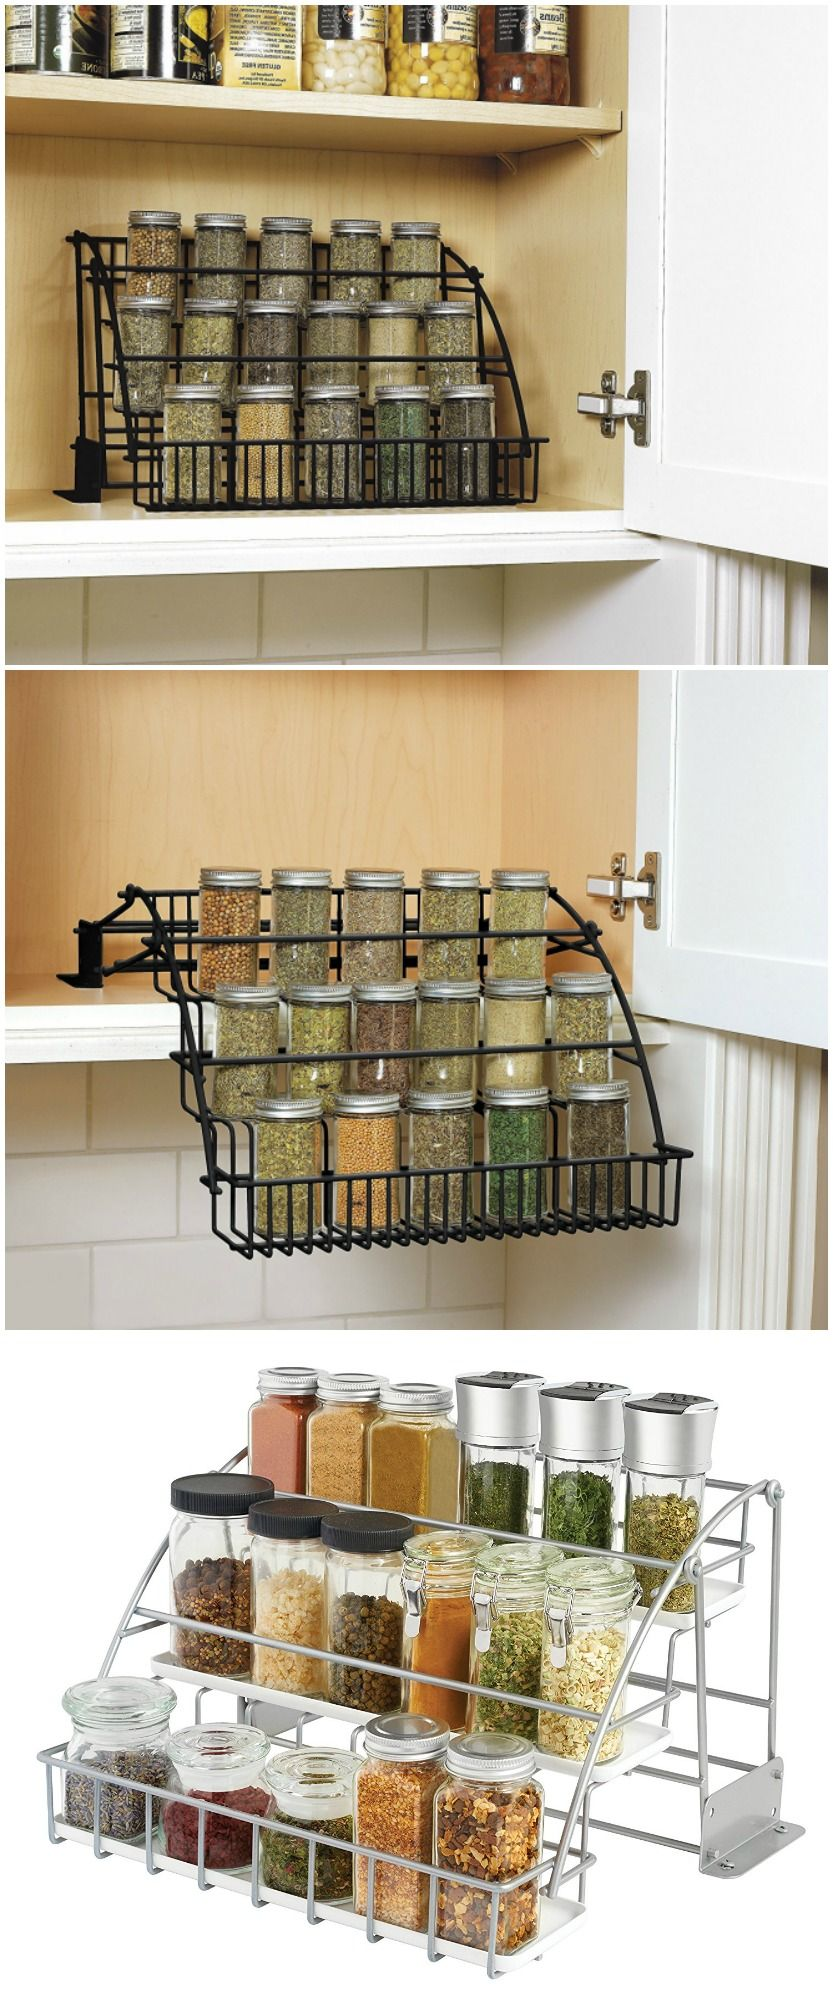 Pro küche design rubbermaid pull down spice rack maximize storage plus easy access